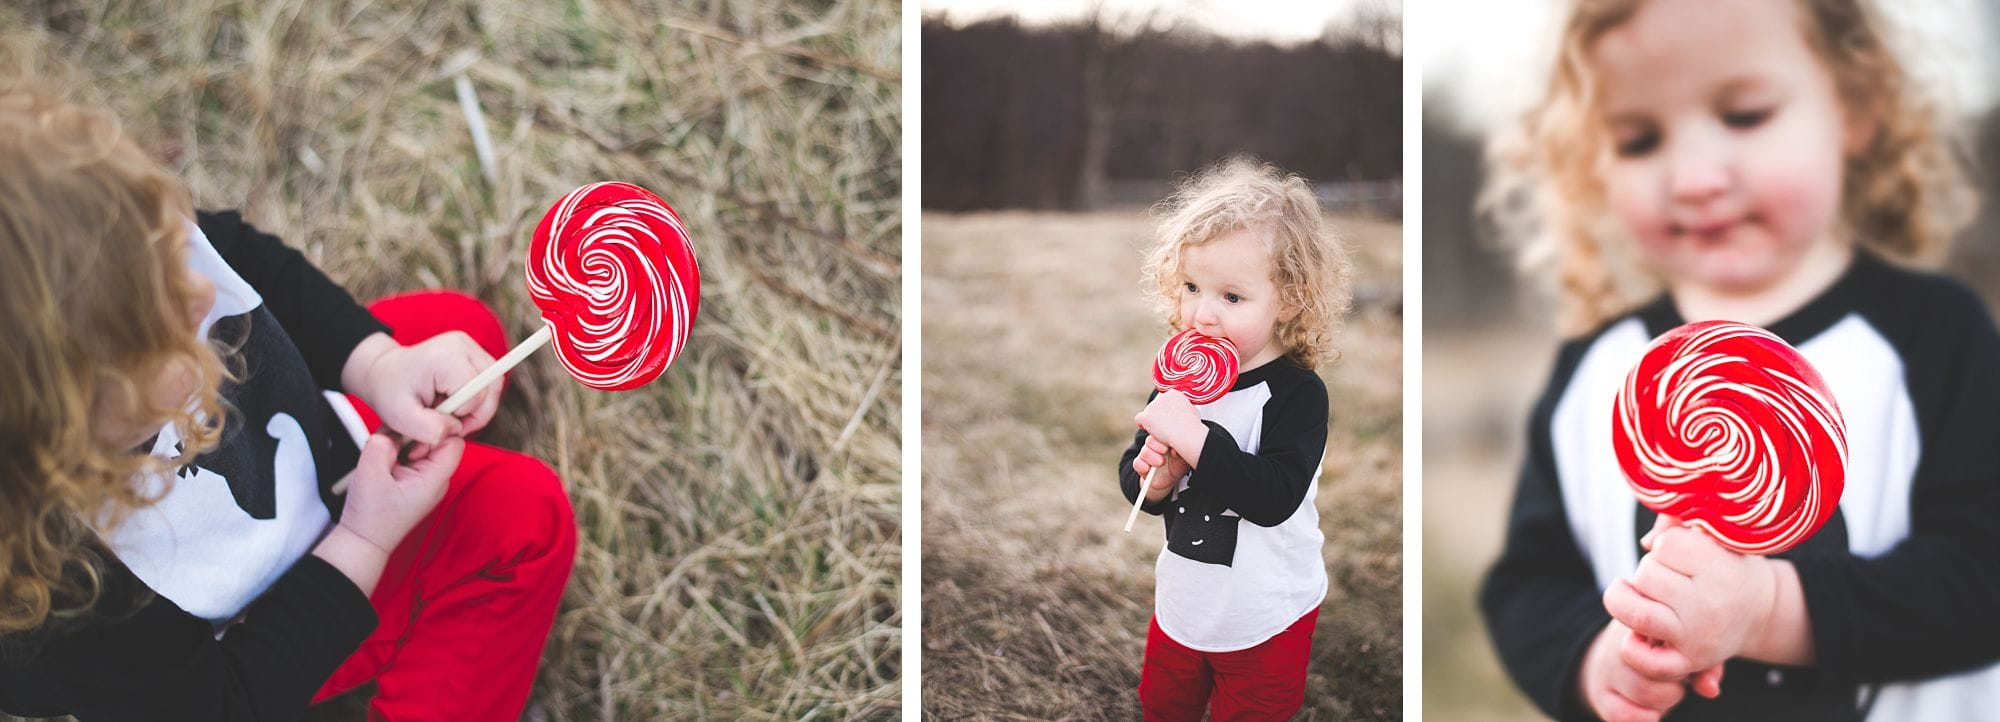 Toddler enjoys a giant red lollipop for his second birthday